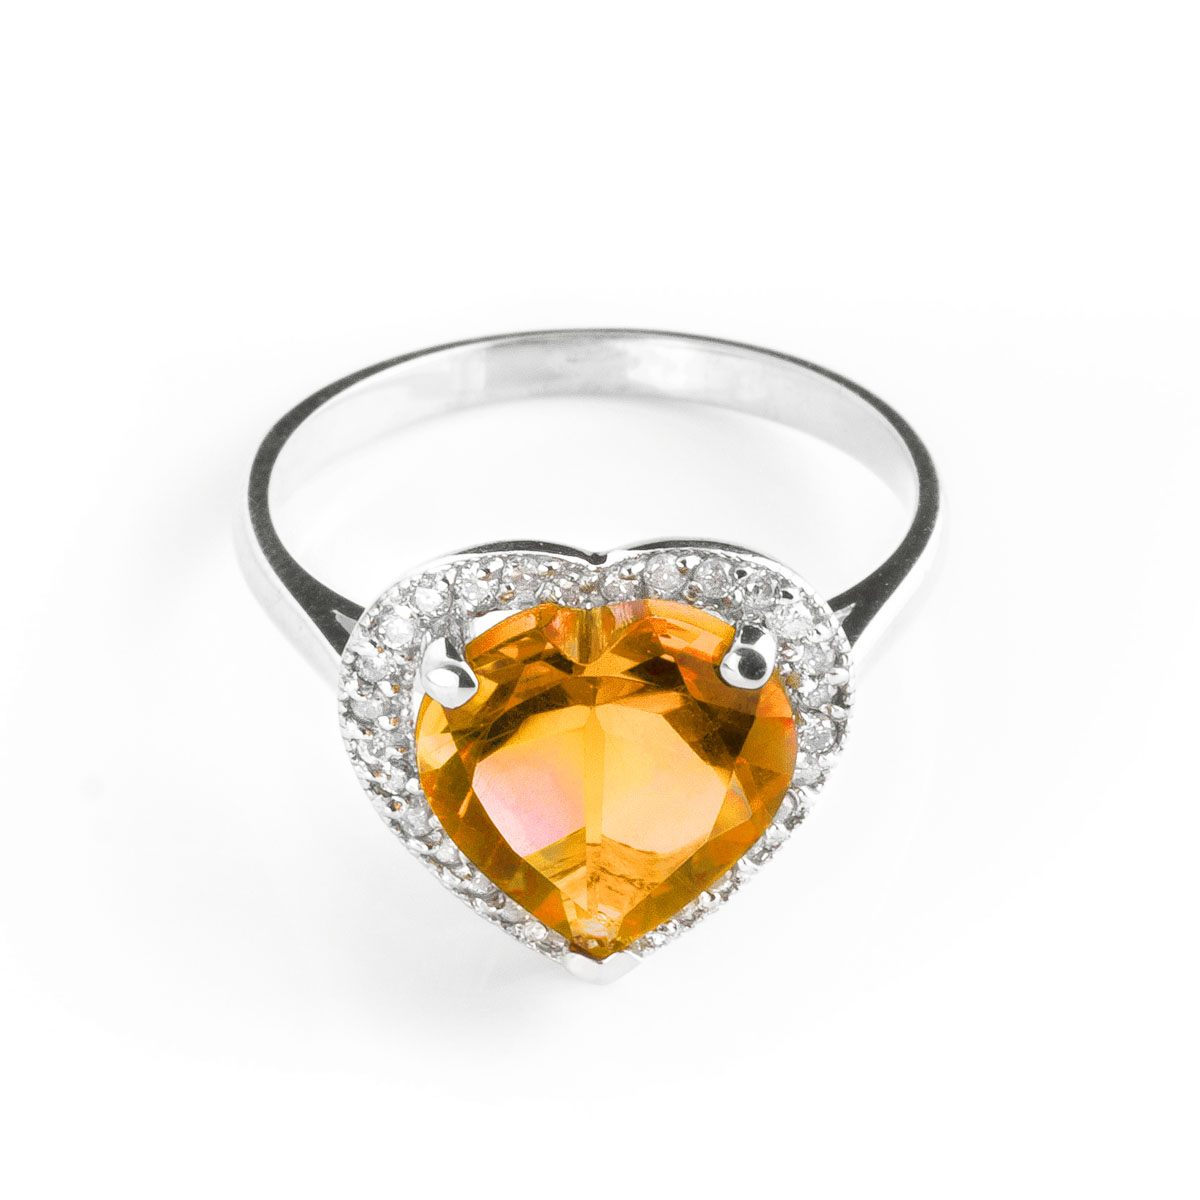 Citrine Halo Ring 3.24 ctw in 18ct White Gold